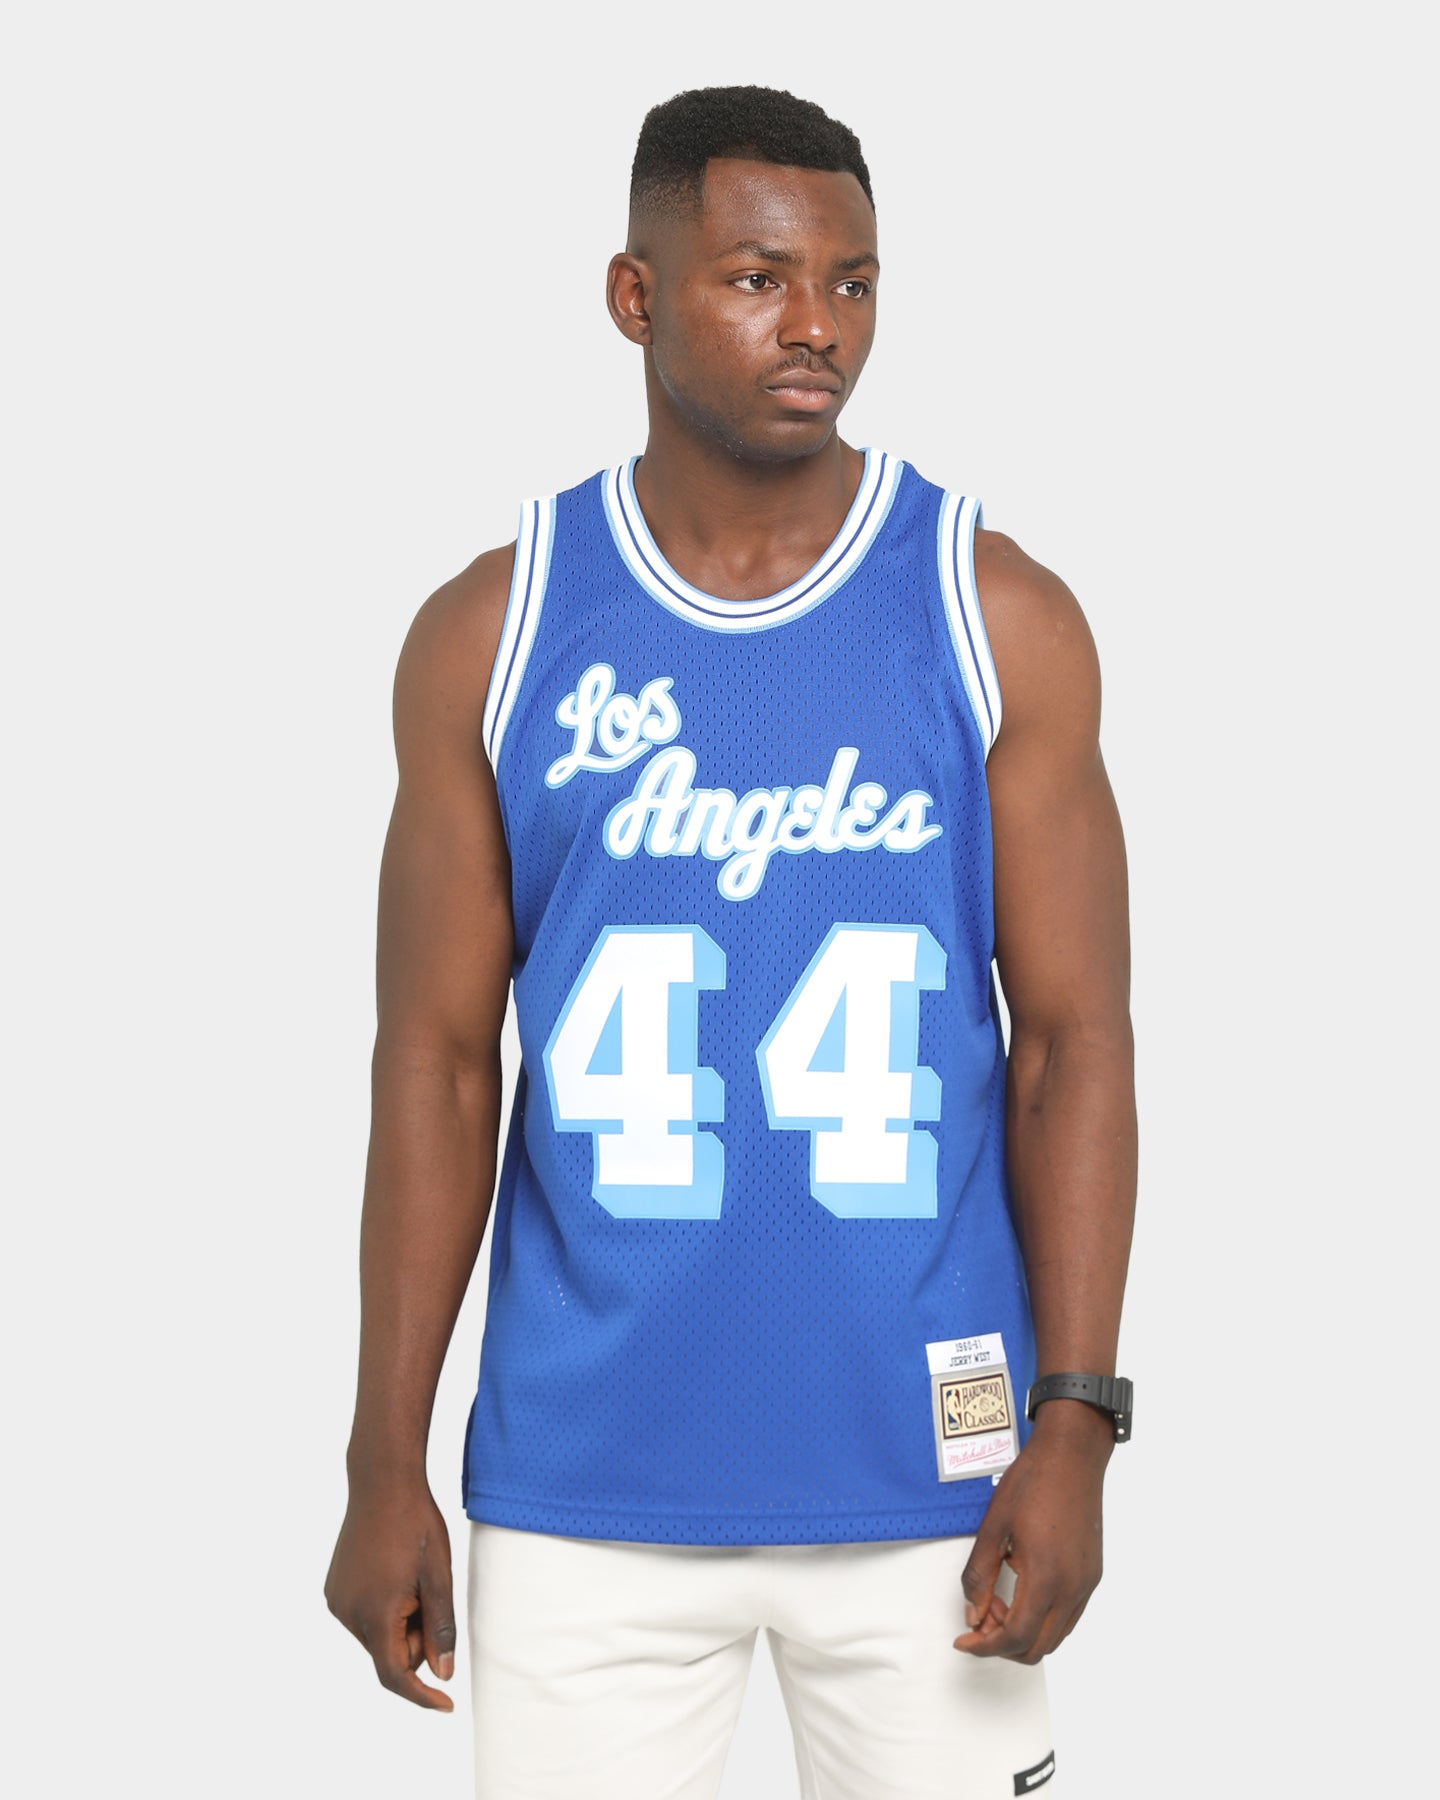 Los Angeles Lakers Vintage Jerry West Champion Basketball Jersey